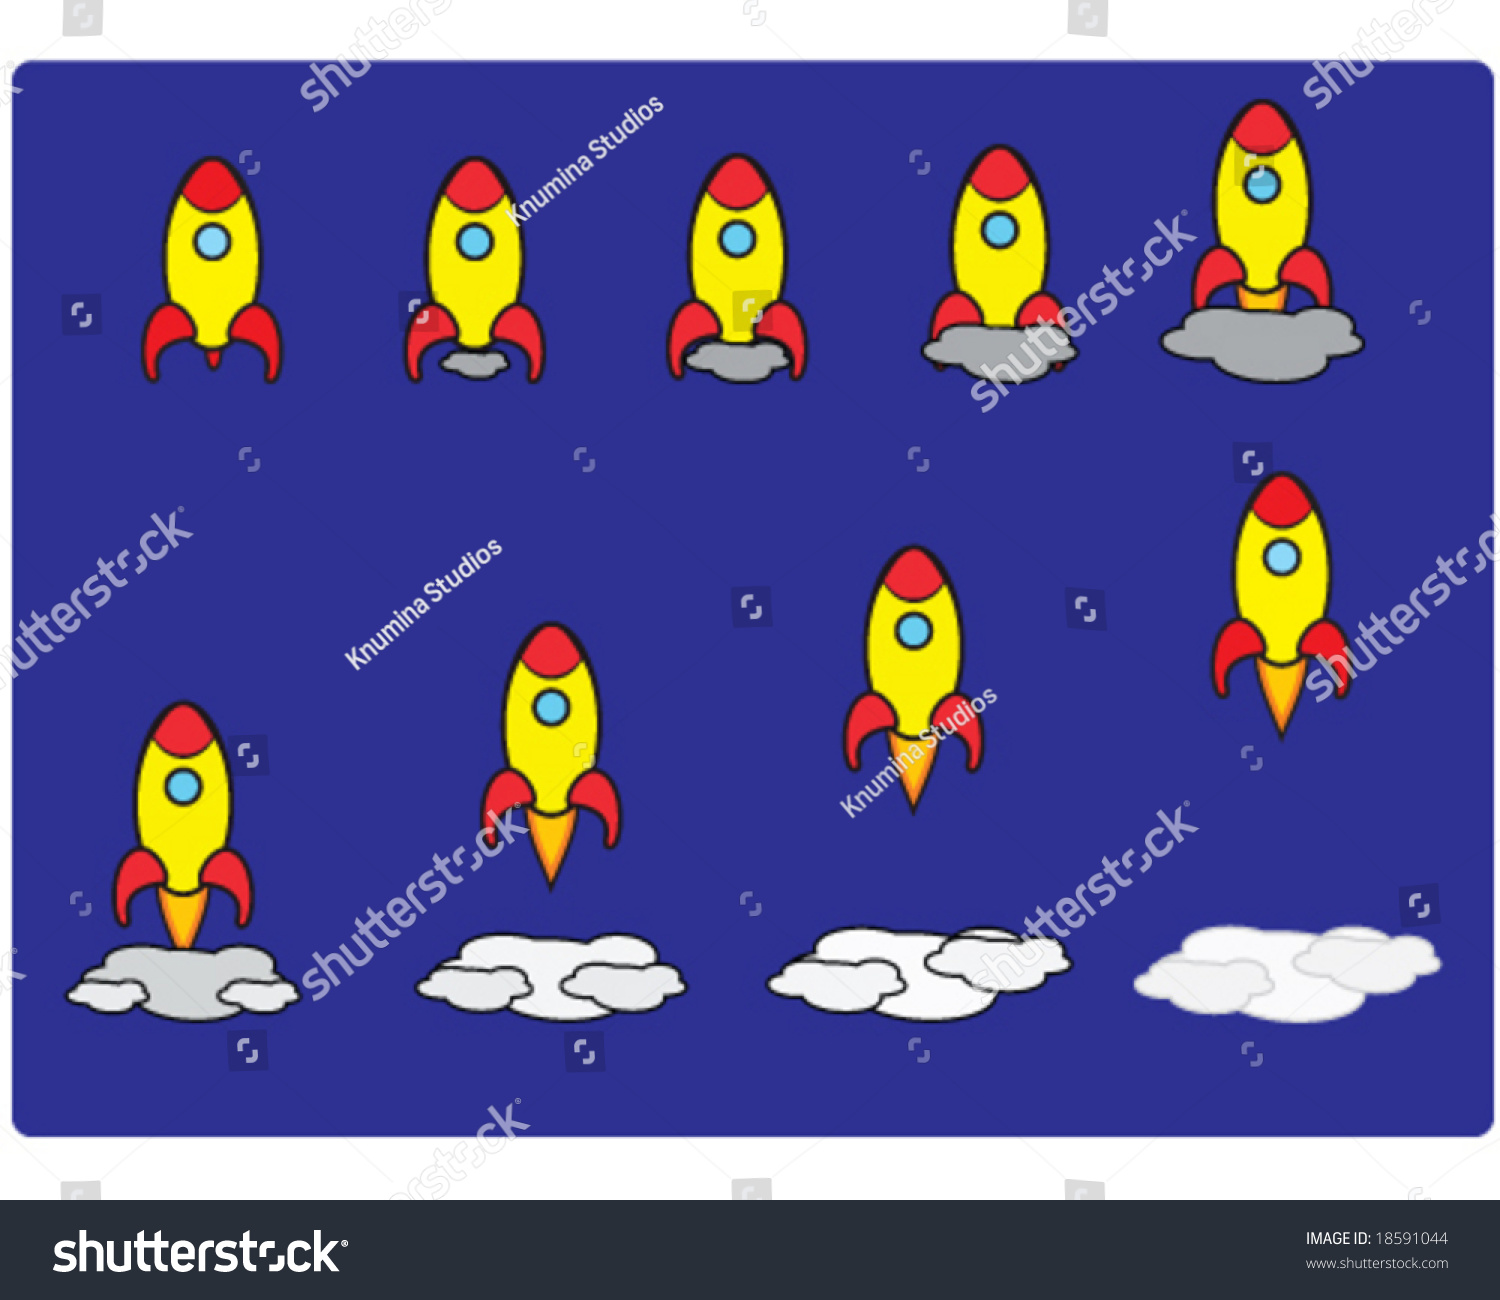 Vector Set Of Rocket Launching In 9 Steps, Good To Animate 18591044 :  Shutterstock Vector